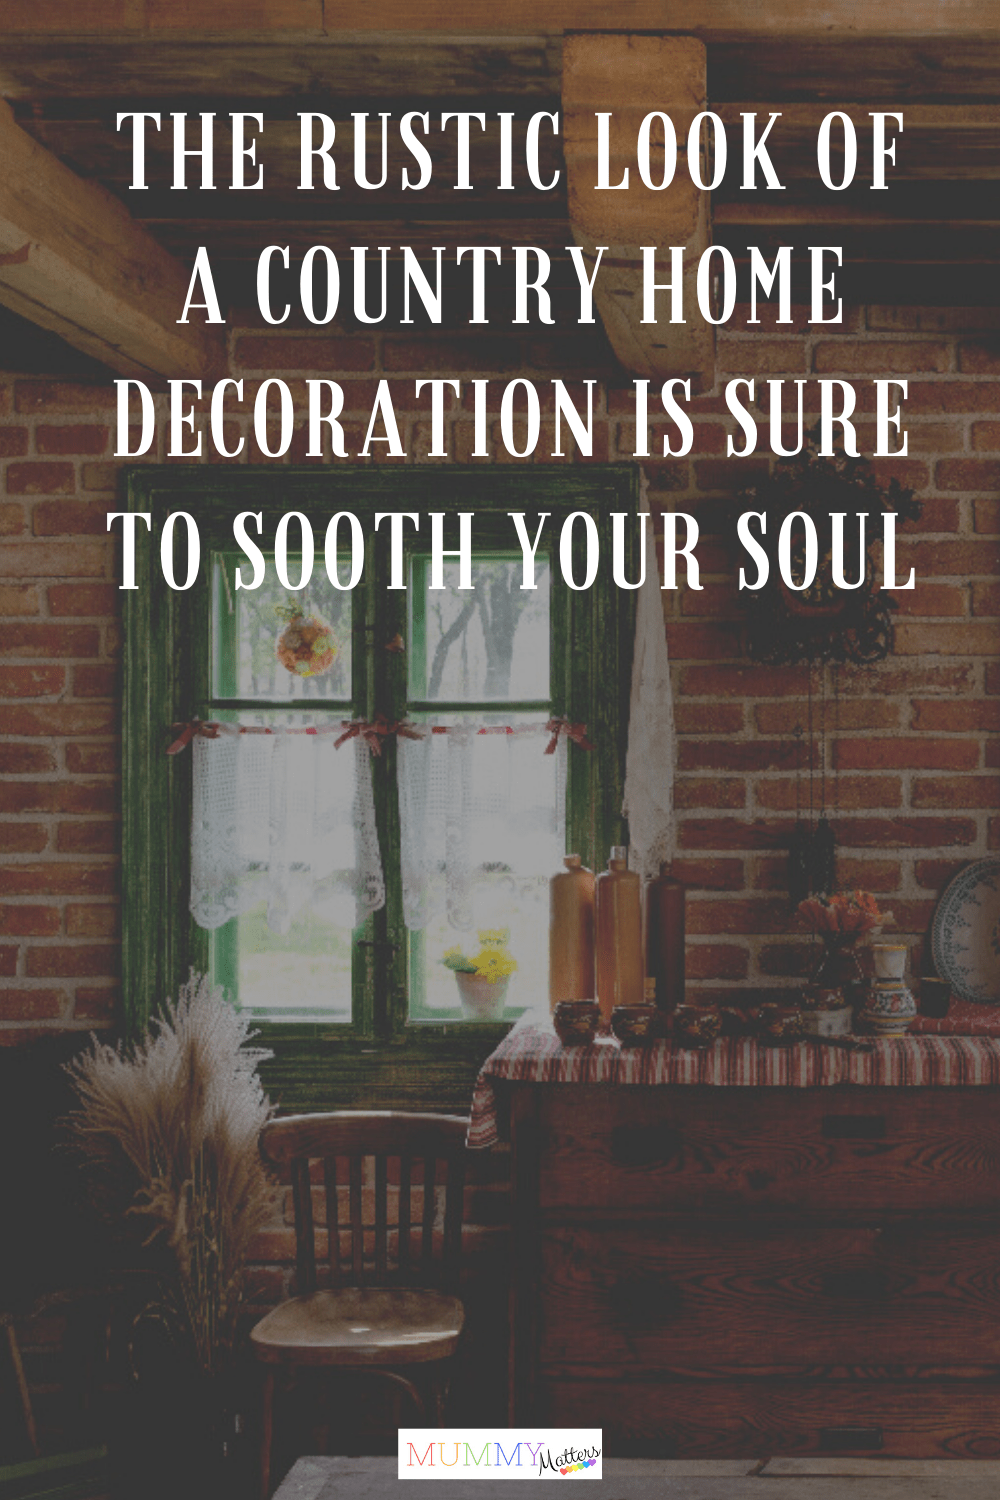 Since the country home decoration style depicts nature and simplicity, some personalities might not like it too much in comparison to the modern bubbly designs.